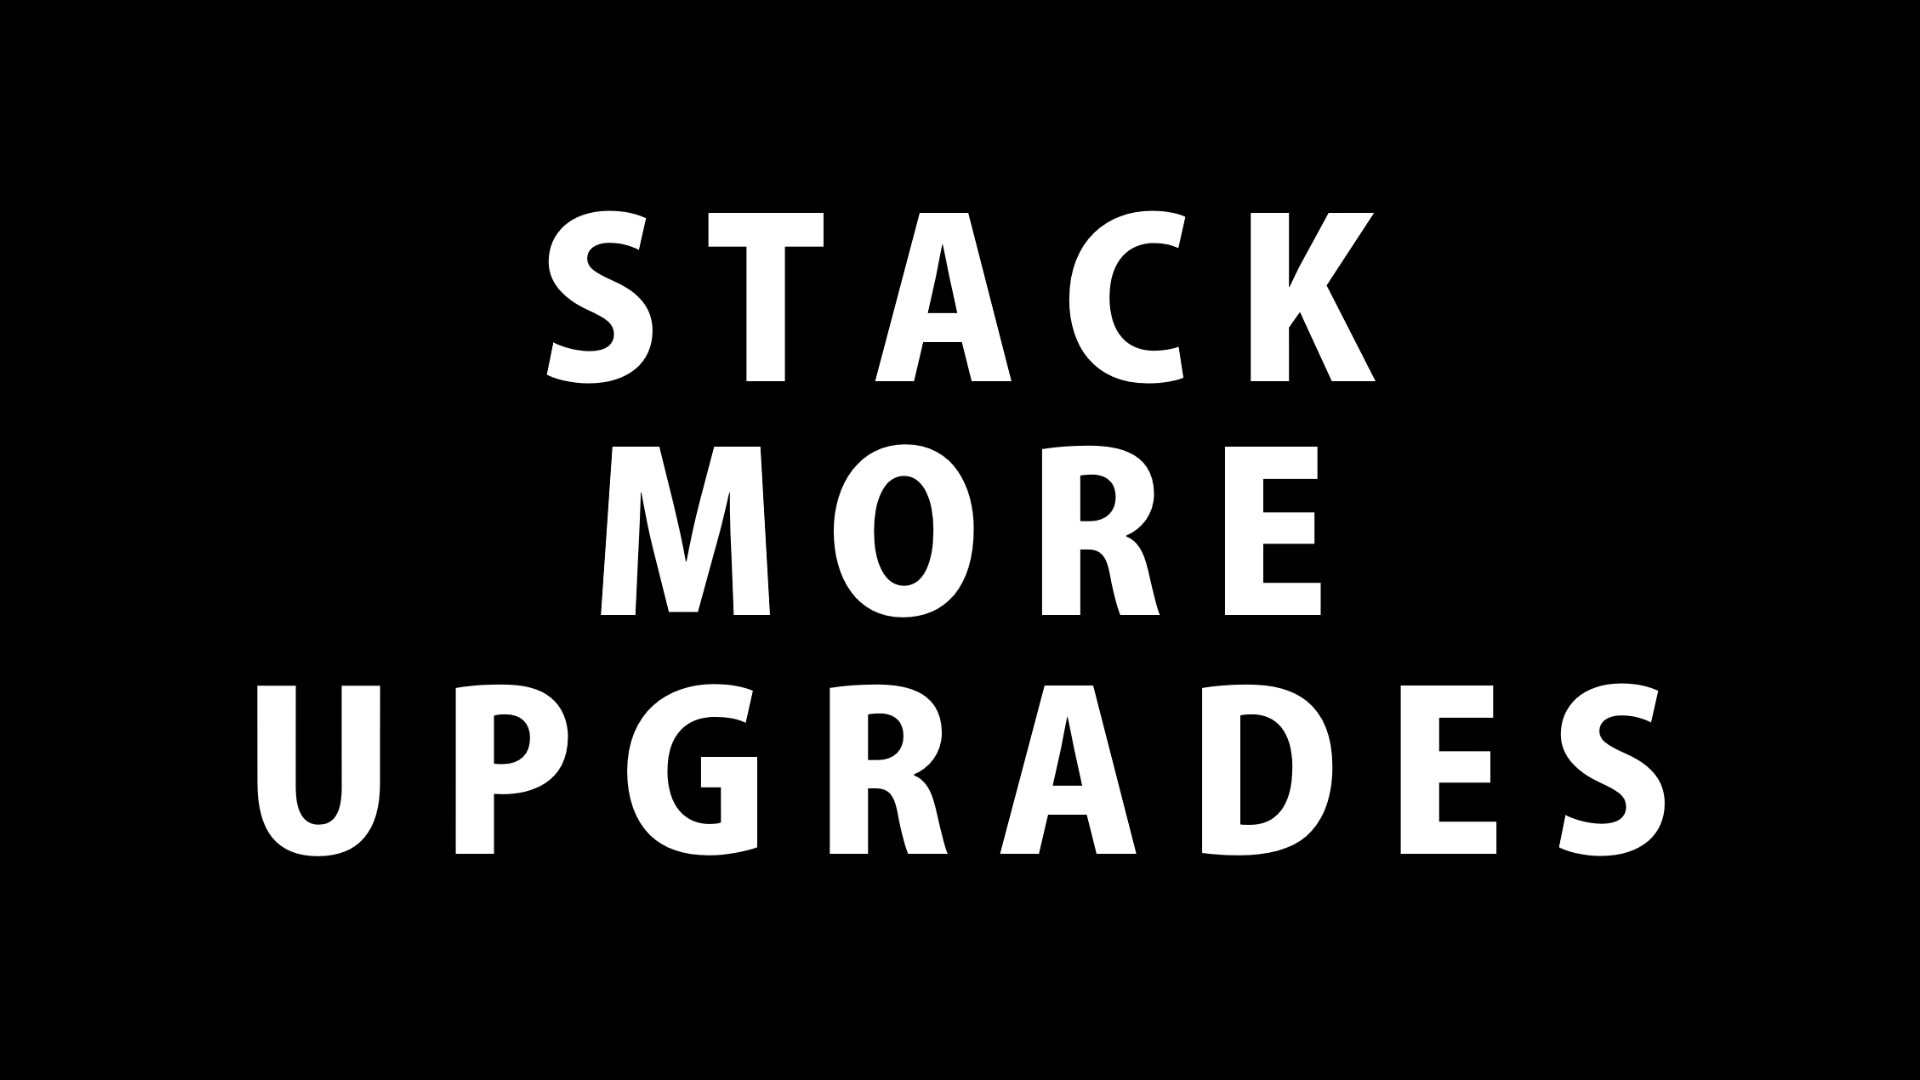 Stack 1 / 2 / 3 more upgrade modules